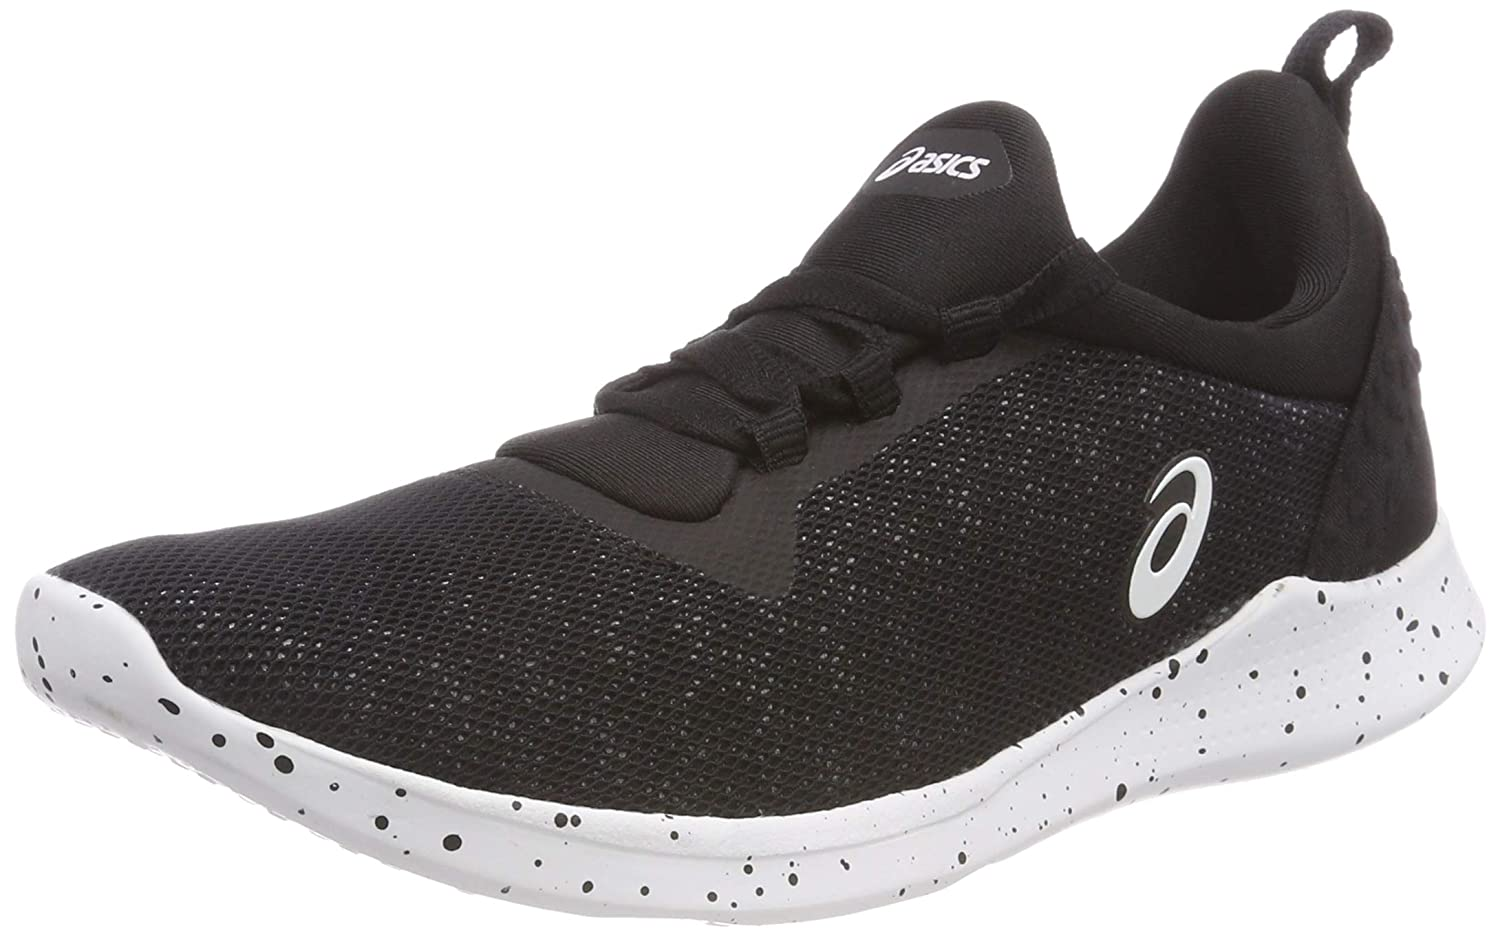 Asics 1032A004-001 GEL-Fit Sana 4 Black White Women/'s Training Shoes